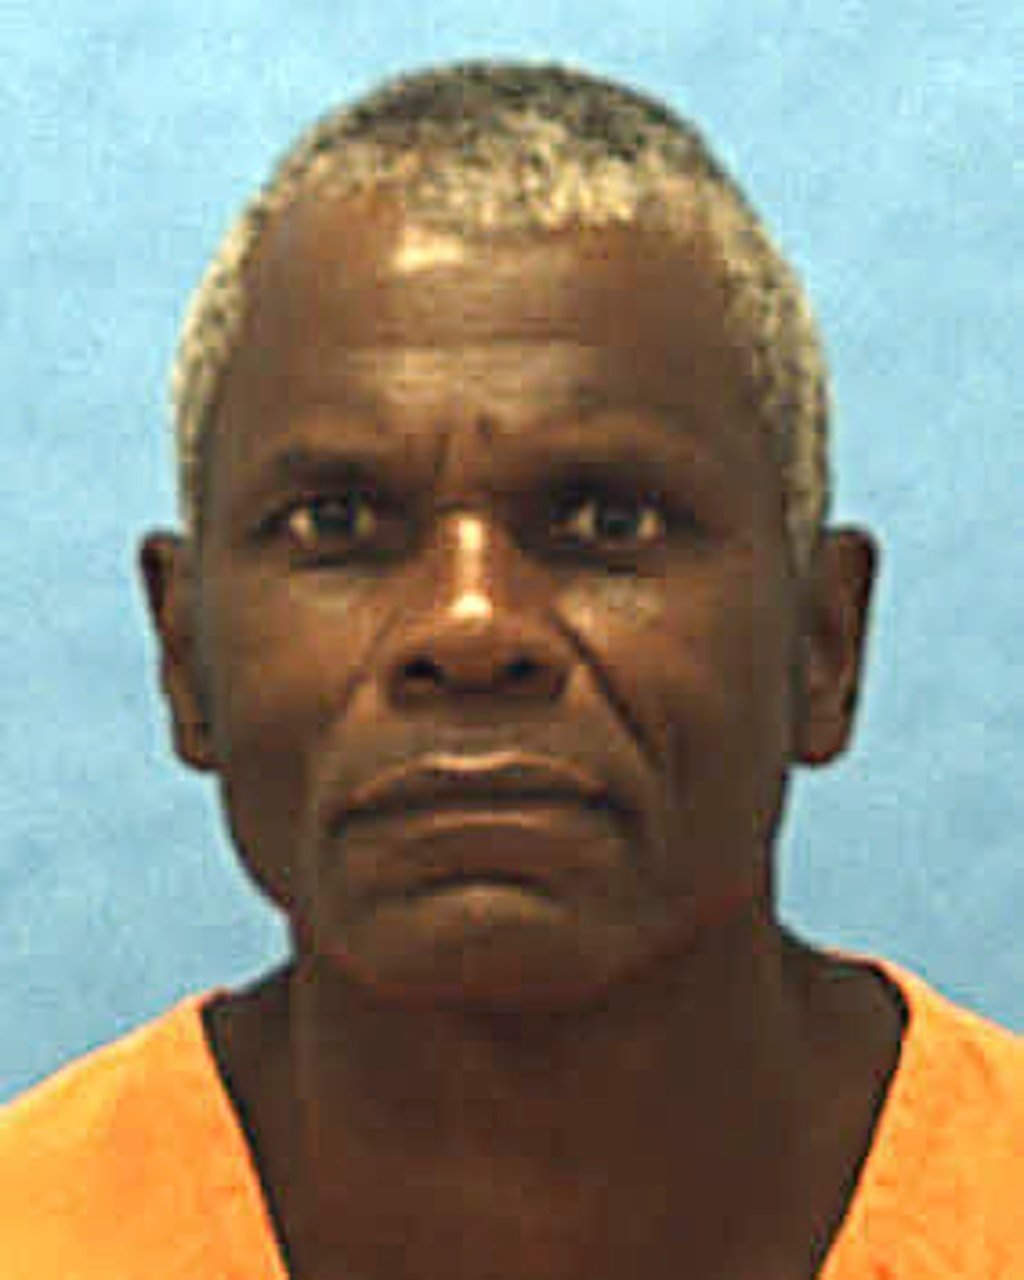 MENTAL ILLNESS: Florida Set to Execute Man Despite Judge's Finding of Paranoid Schizophrenia